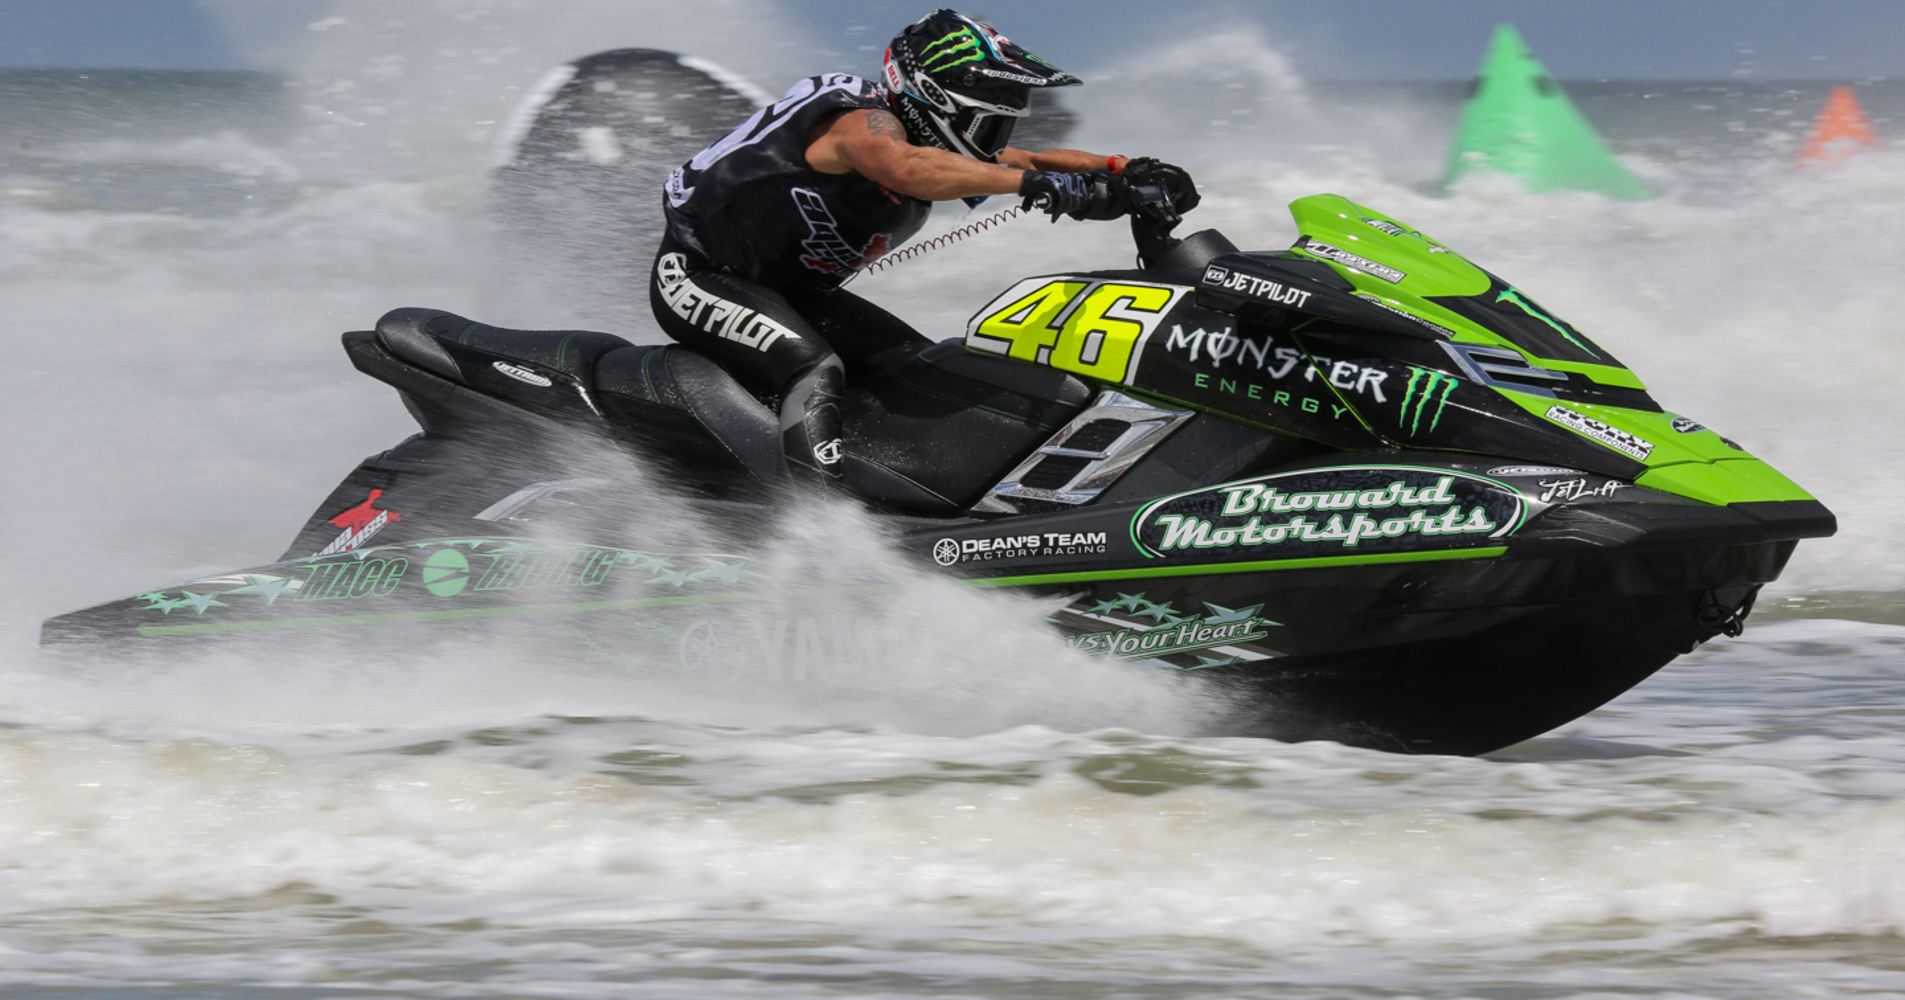 The AquaX Pro Series is made up of the best PWC racers in the world